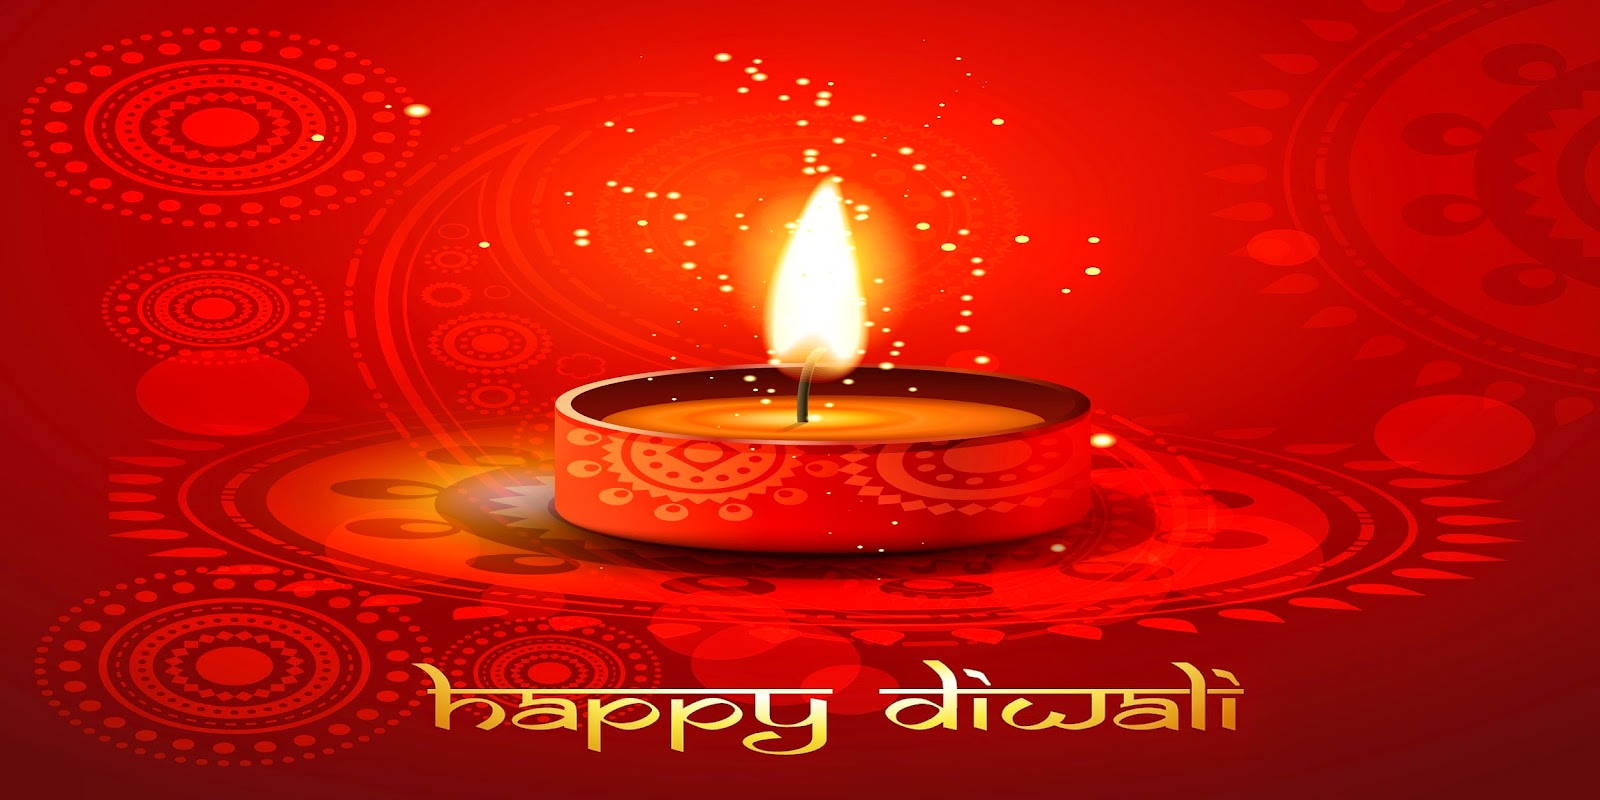 Happy diwali 2014 greeting and wishes hd wallpapers free download beautifully diwali greetings wishes for family m4hsunfo